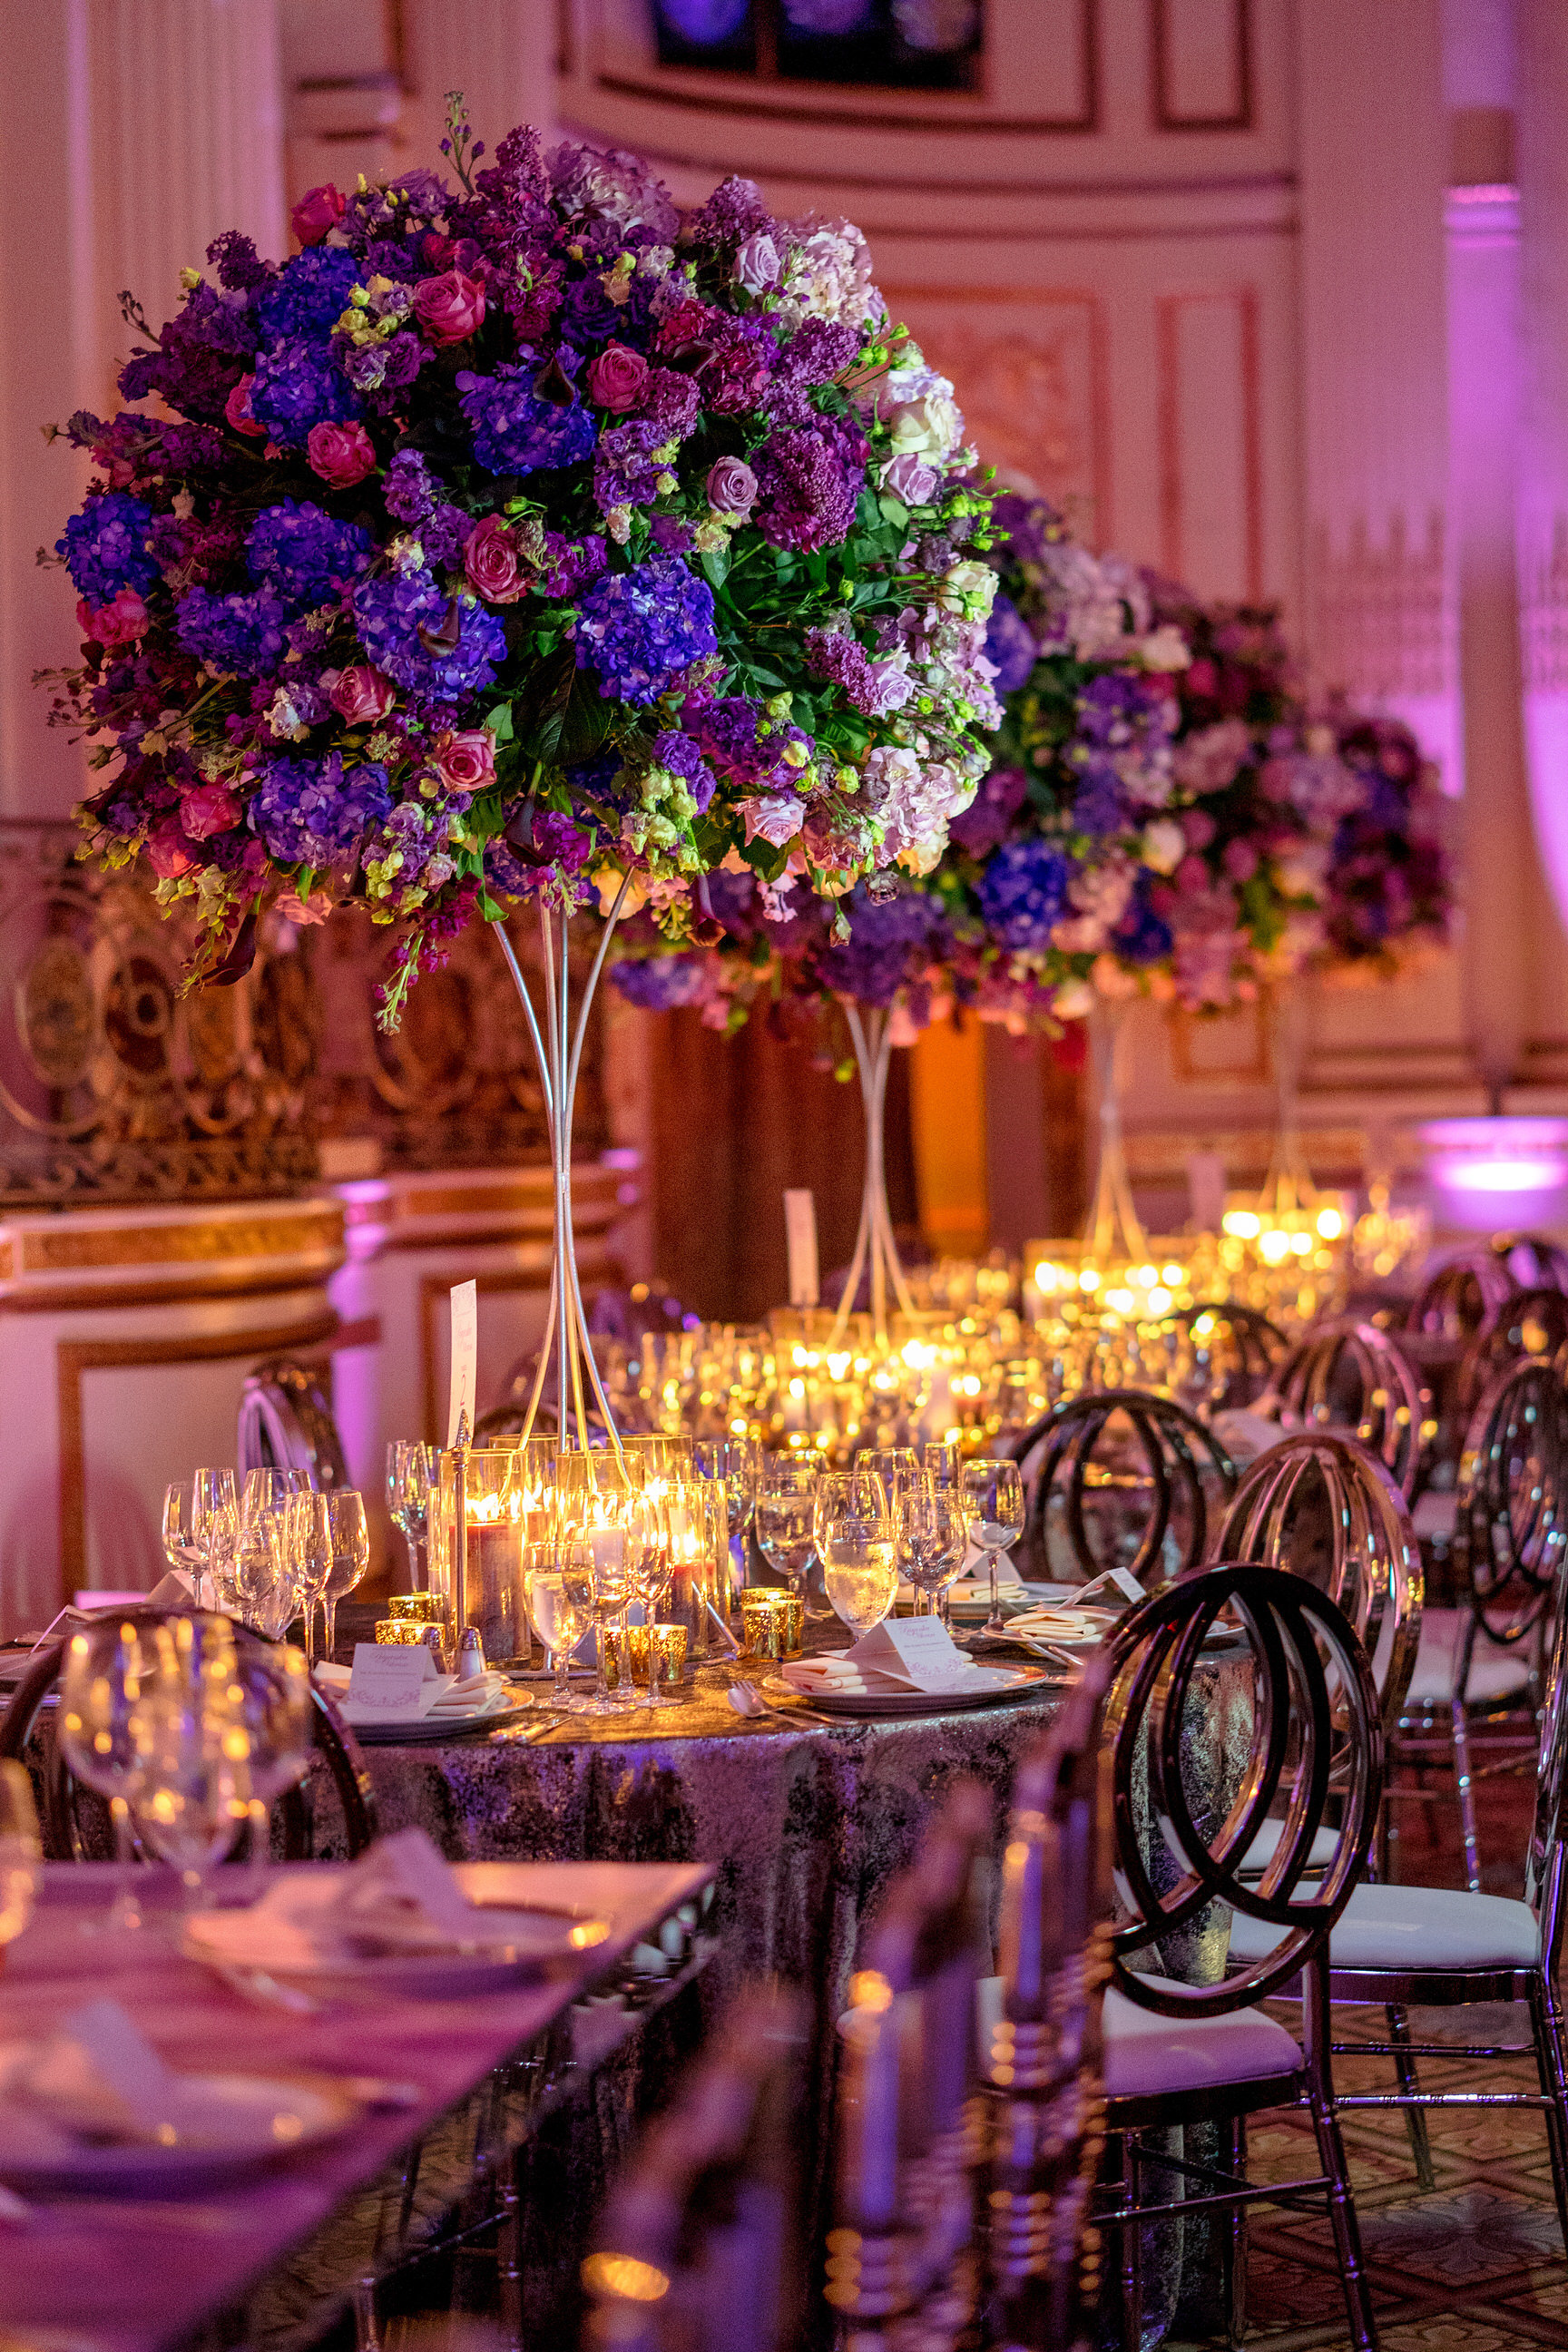 INDIAN WEDDING RECEPTION TABLE SETTING WITH CENTERPIECE.JPG